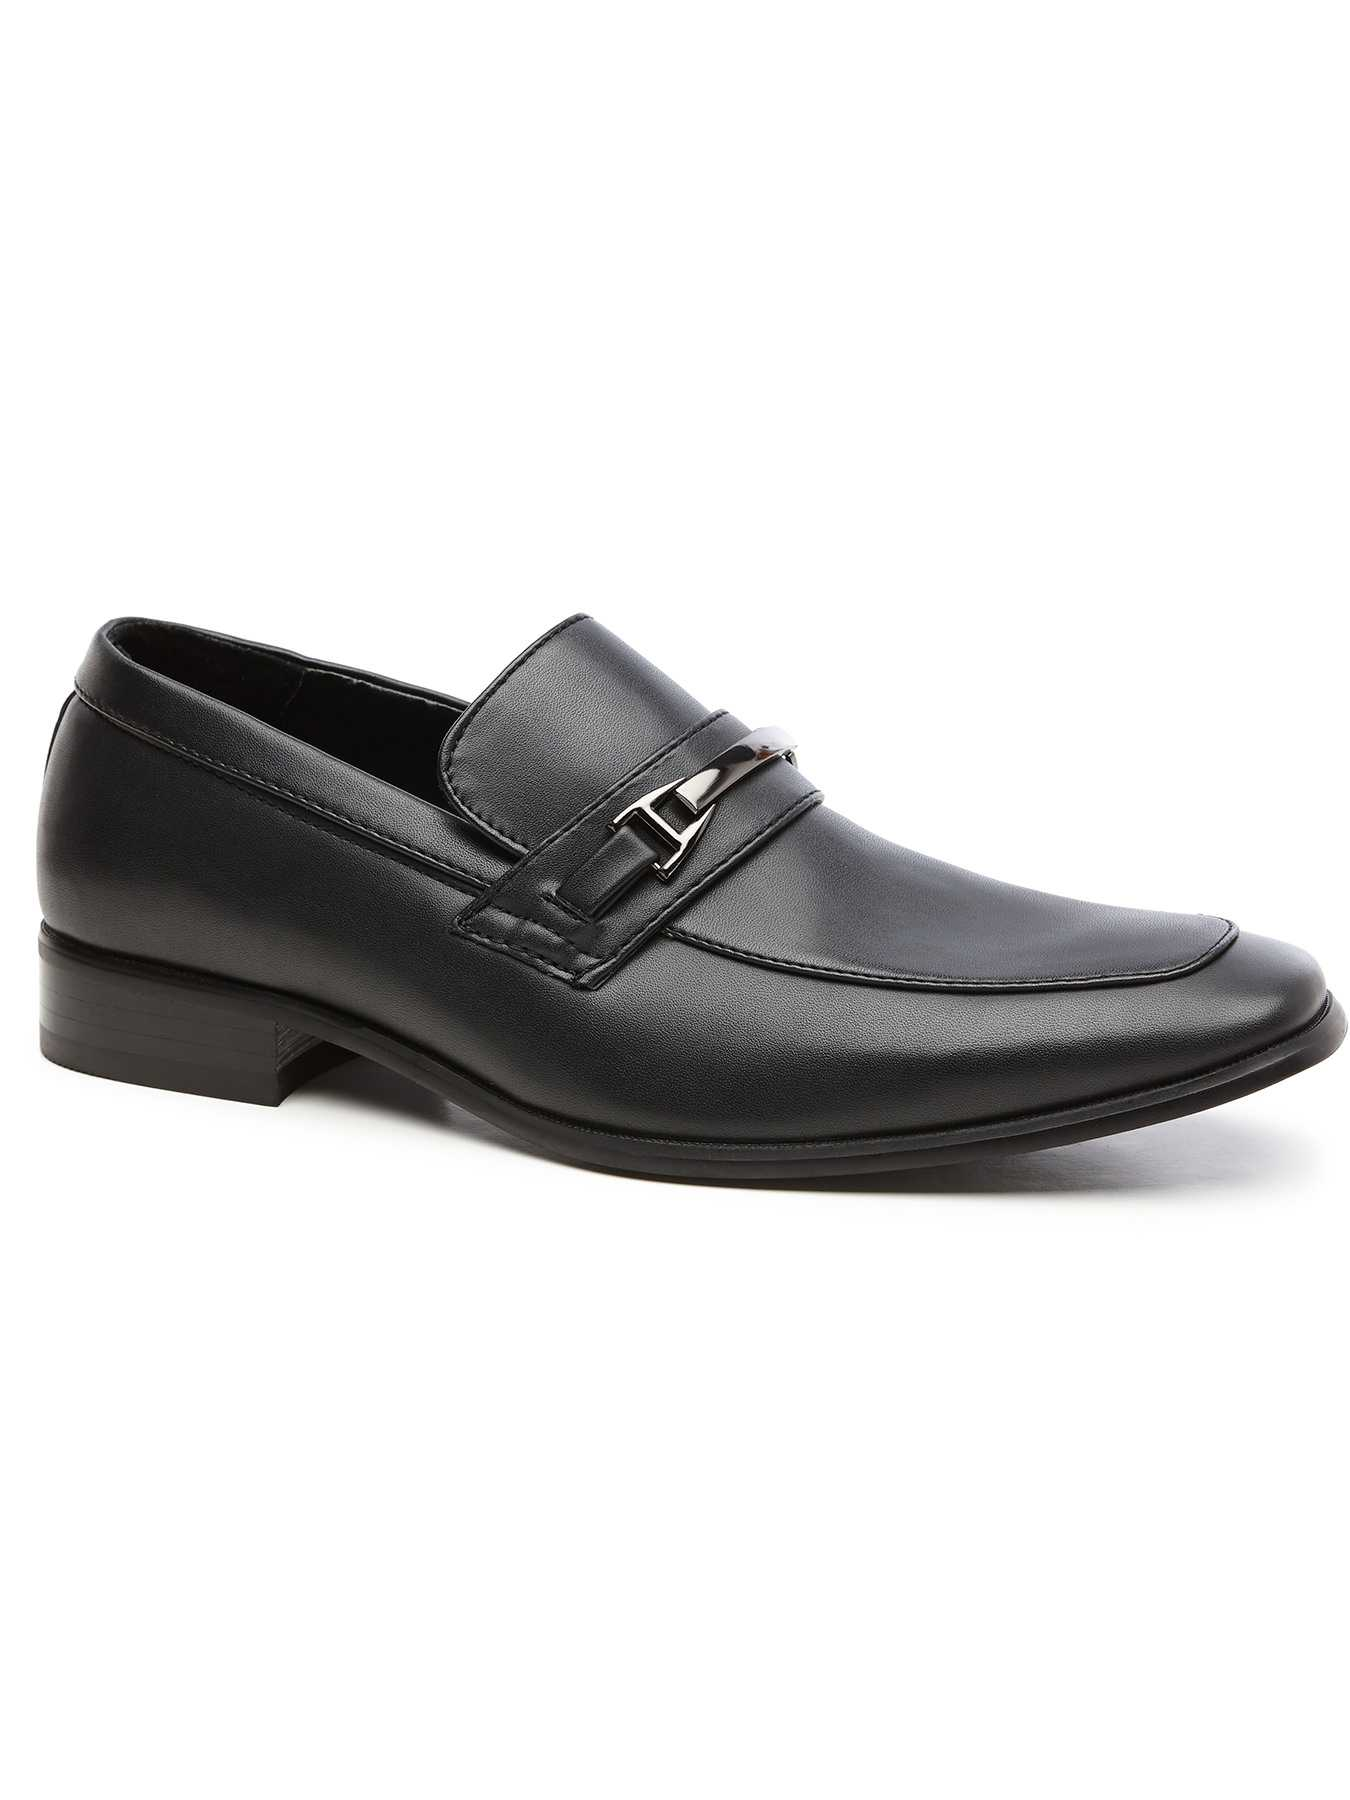 Perry Ellis Shoes Boys Price